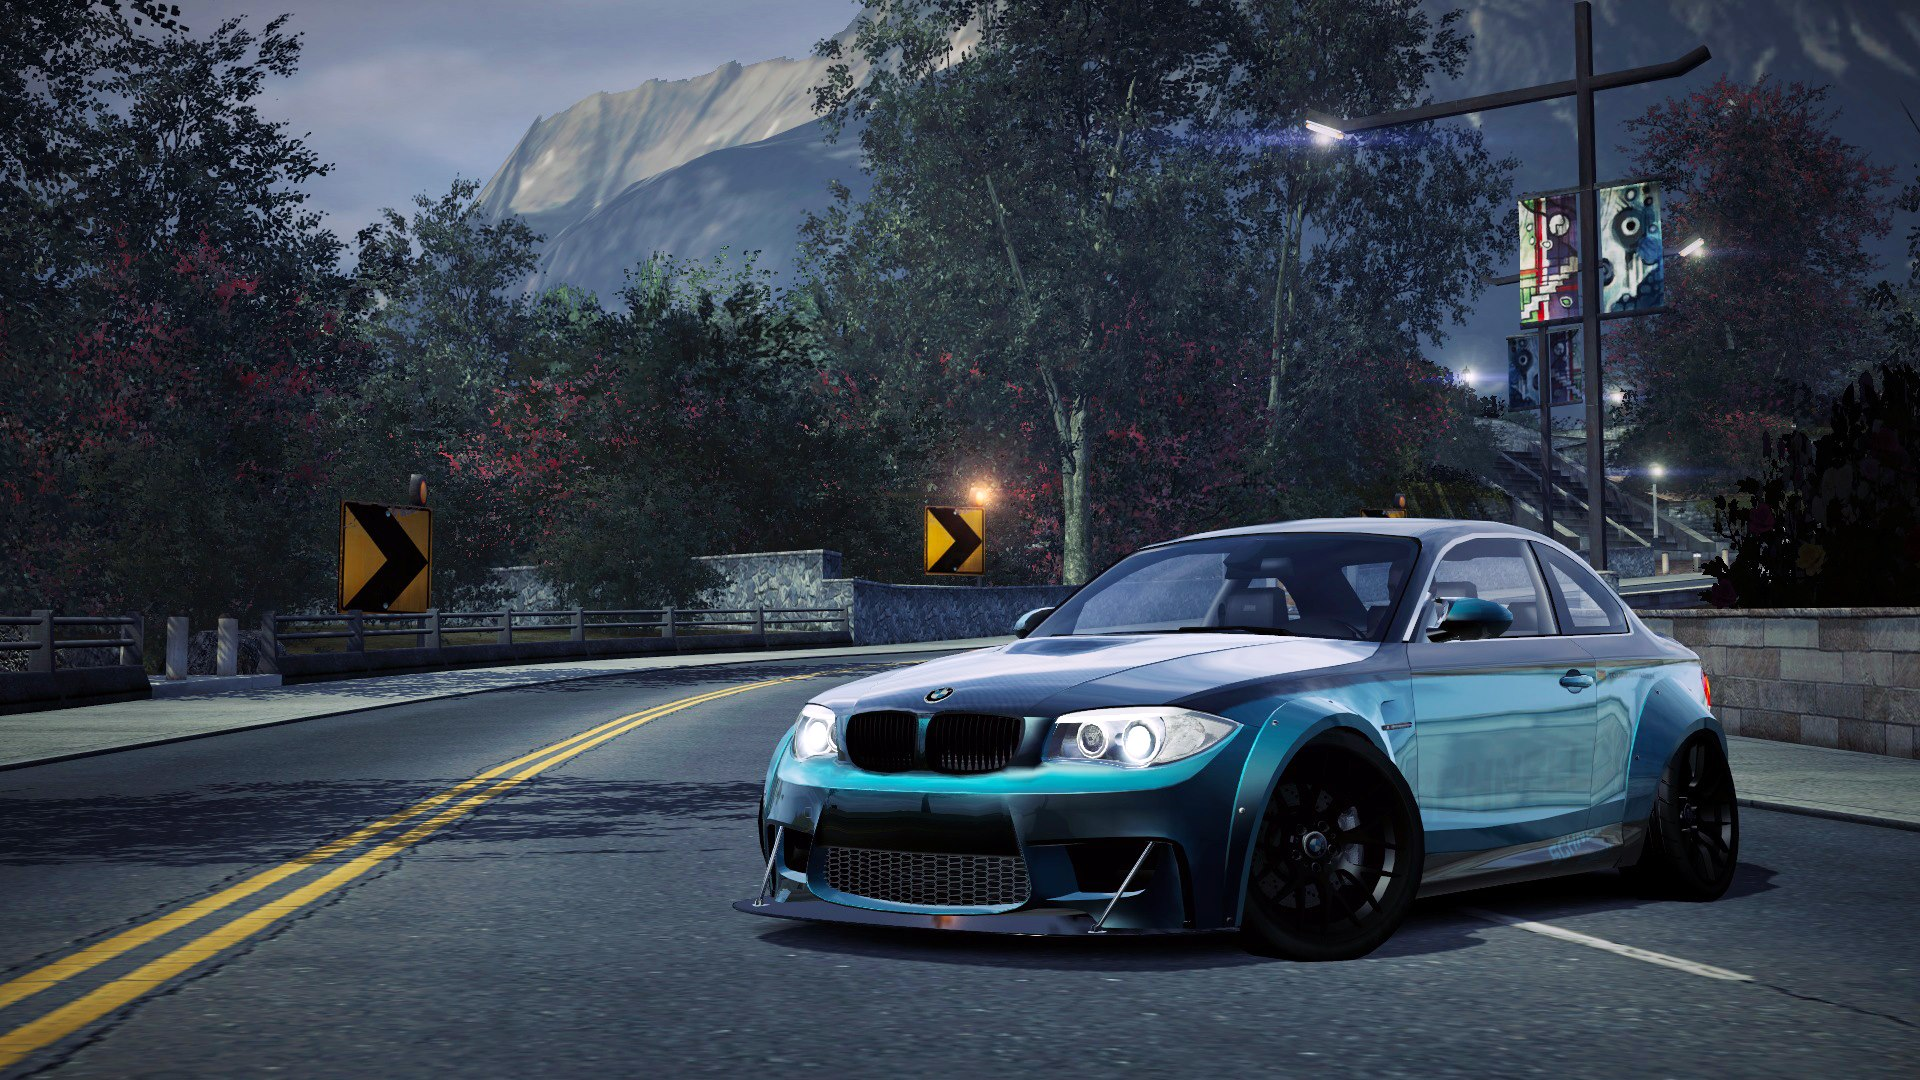 Image CarRelease BMW Series M Coupe Schnelljpg NFS World - Bmw 1 series m coupe